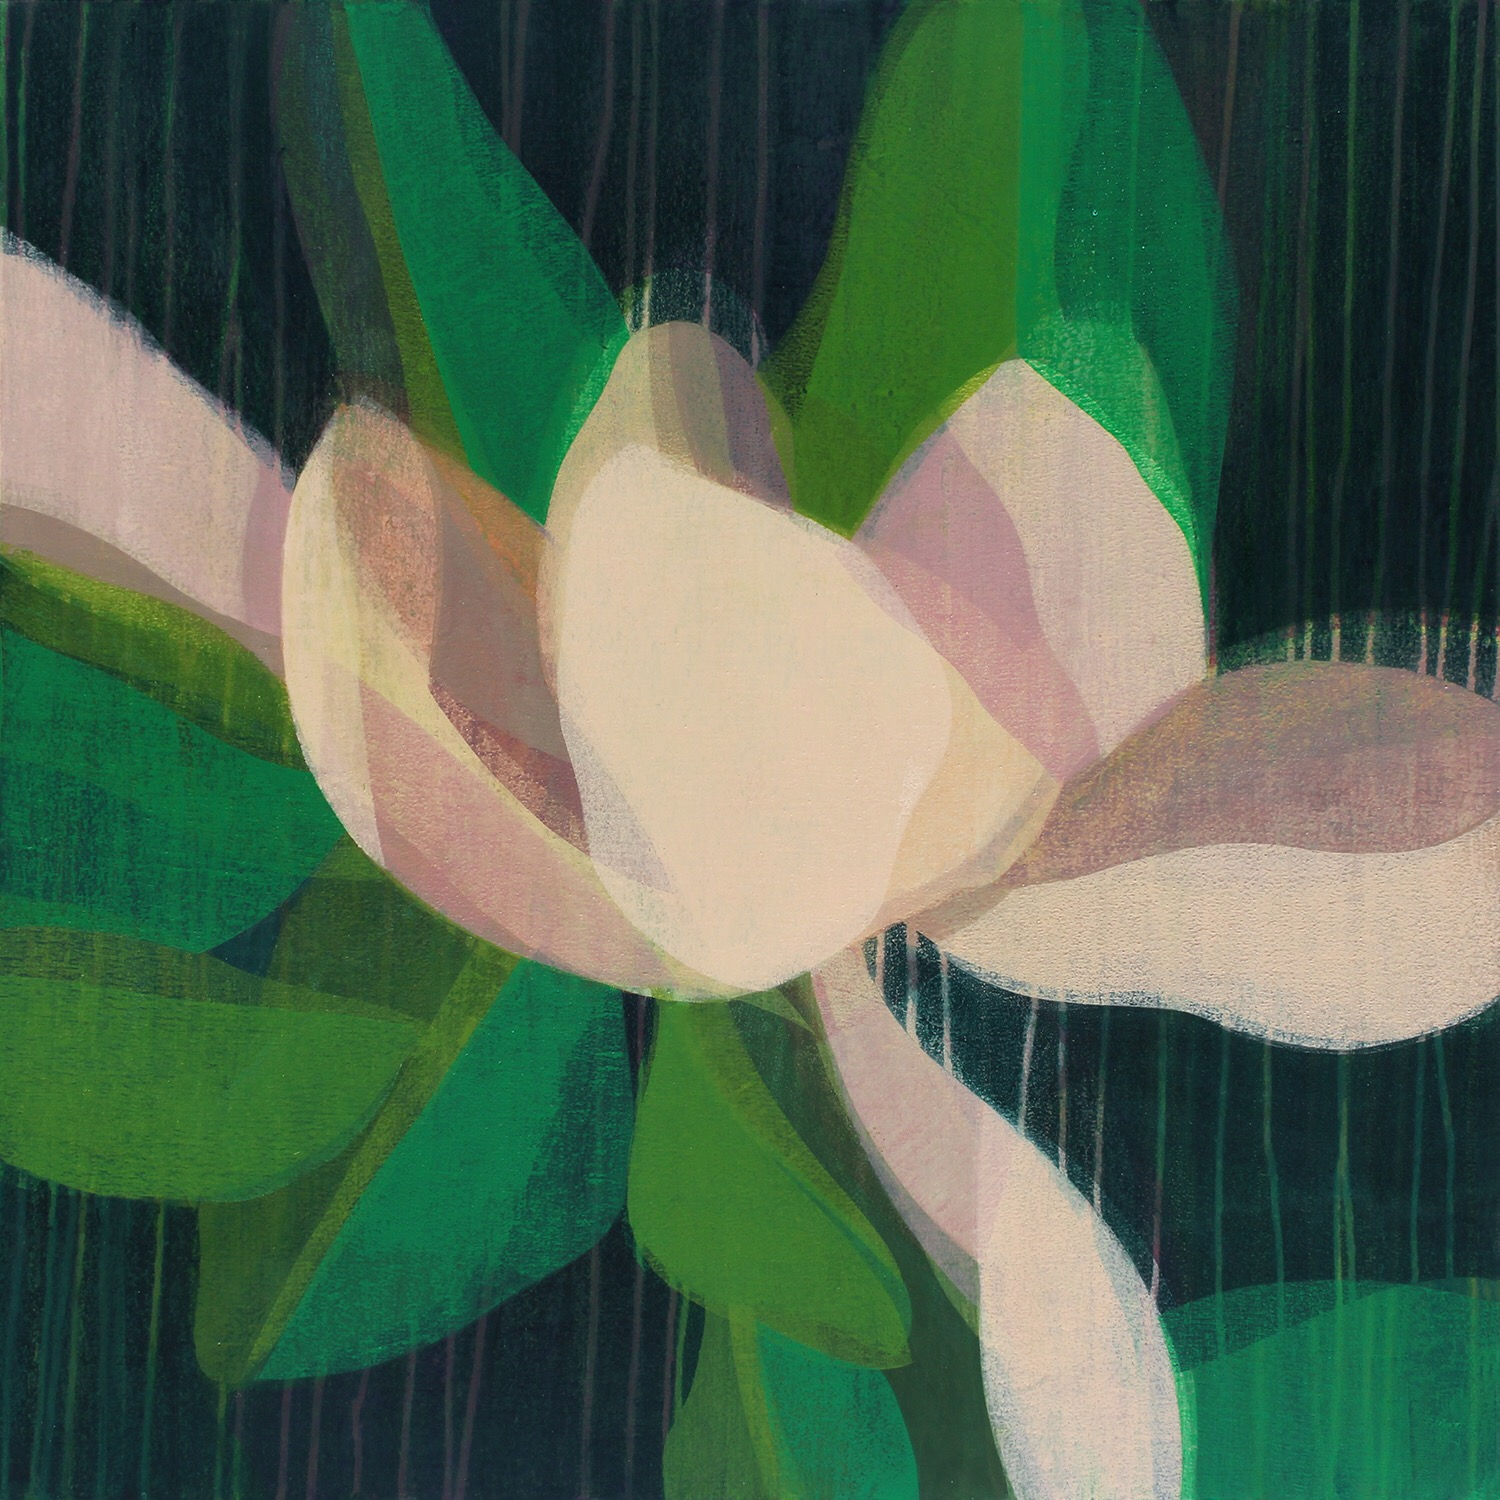 "(magnolia) pink lilac, 36"" x 36"", water-based media on canvas, 2018-2019"